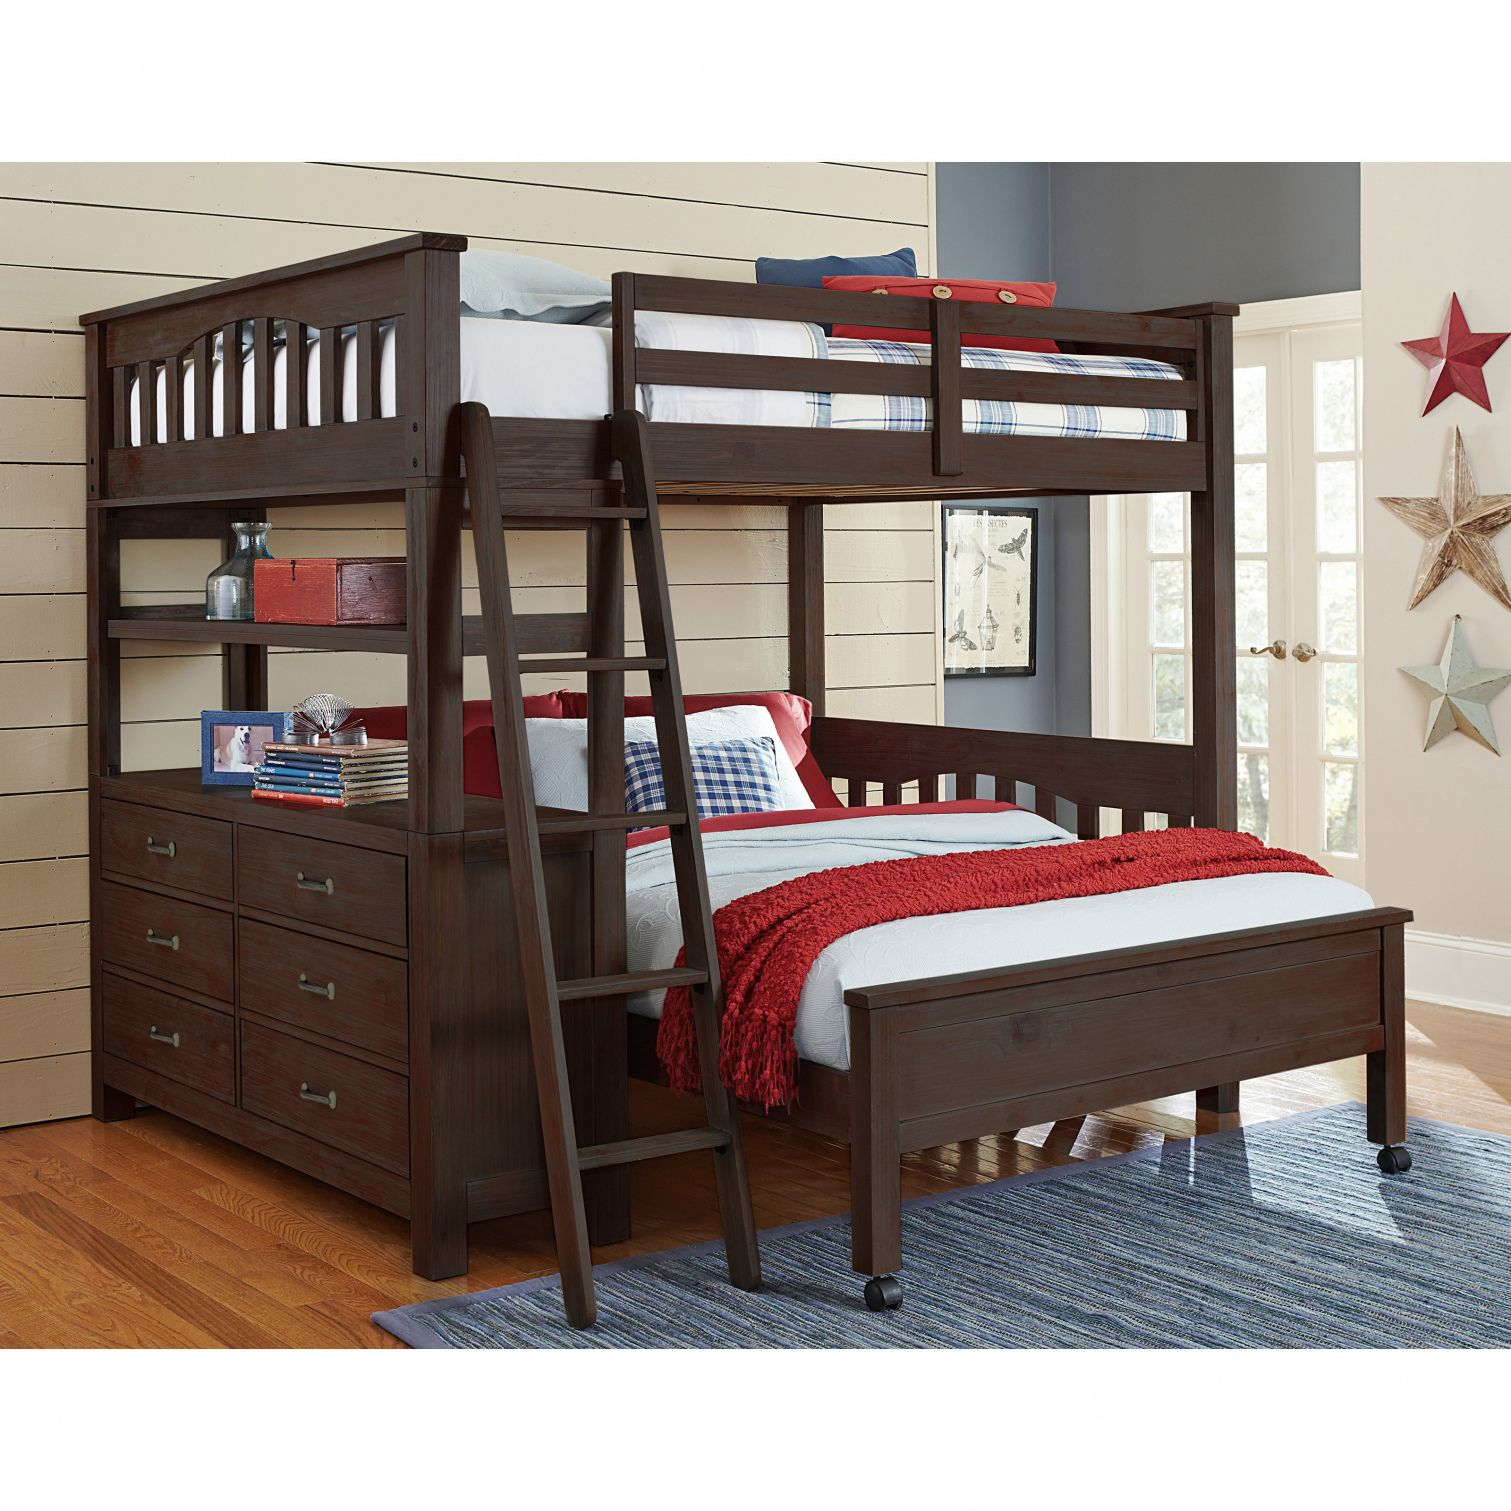 Two twin loft bed  Boys Bunk Beds Twin Over Full  Lowes Paint Colors Interior Check